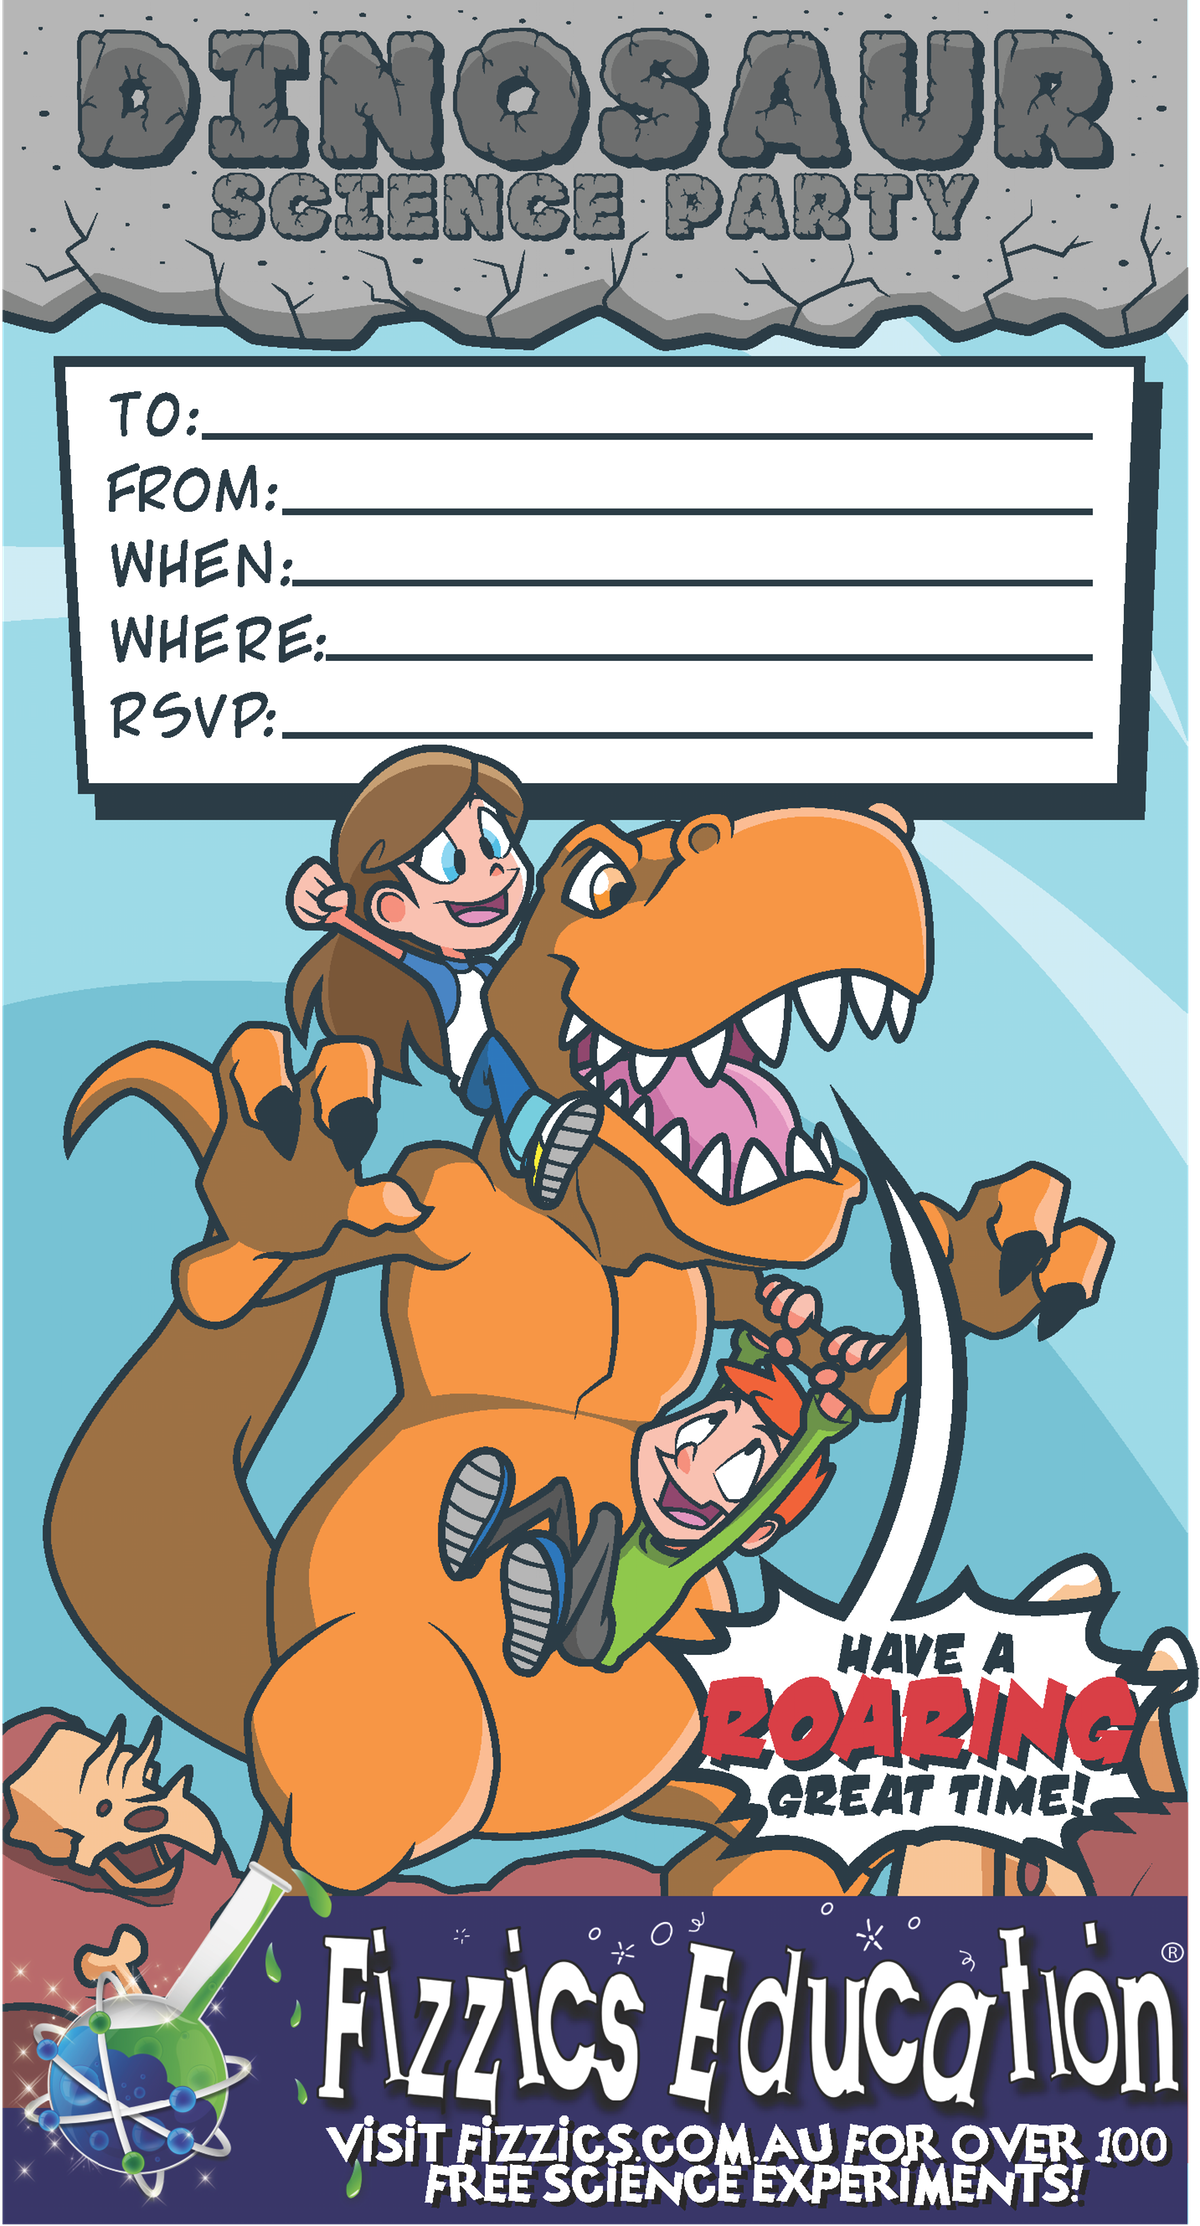 3 awesome DL invitations: Dinosaurs, space & forensics!